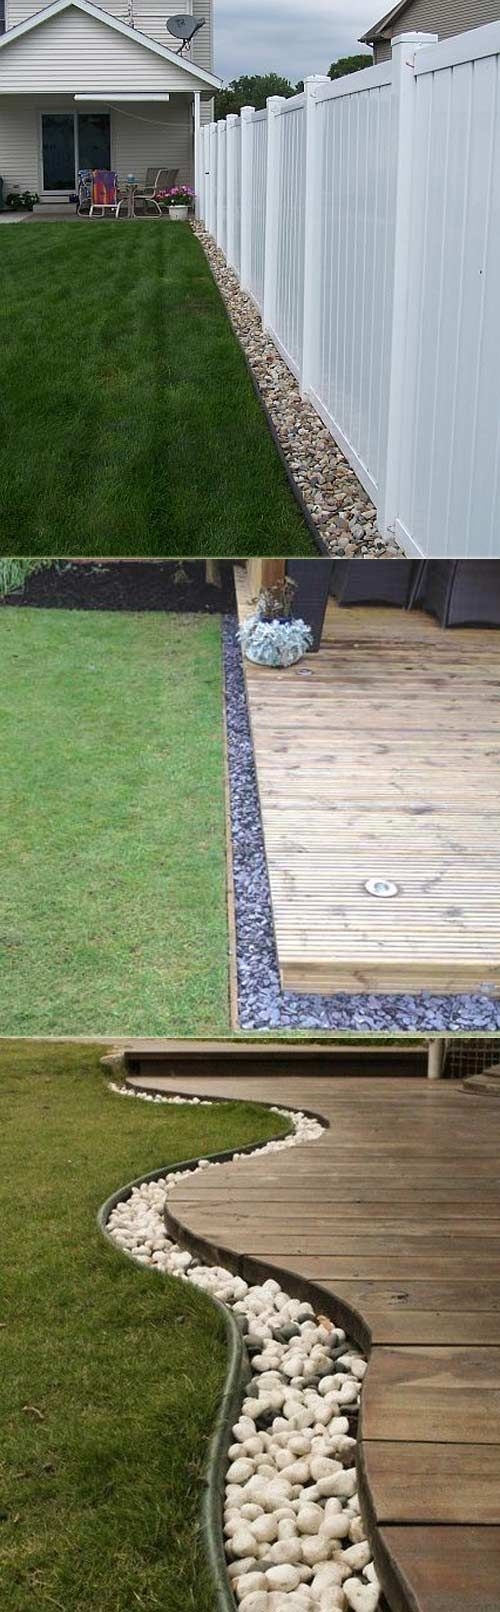 Rocks or Pebbles Used As Simple Clean Edging Of A Deck #LandscapeEdging